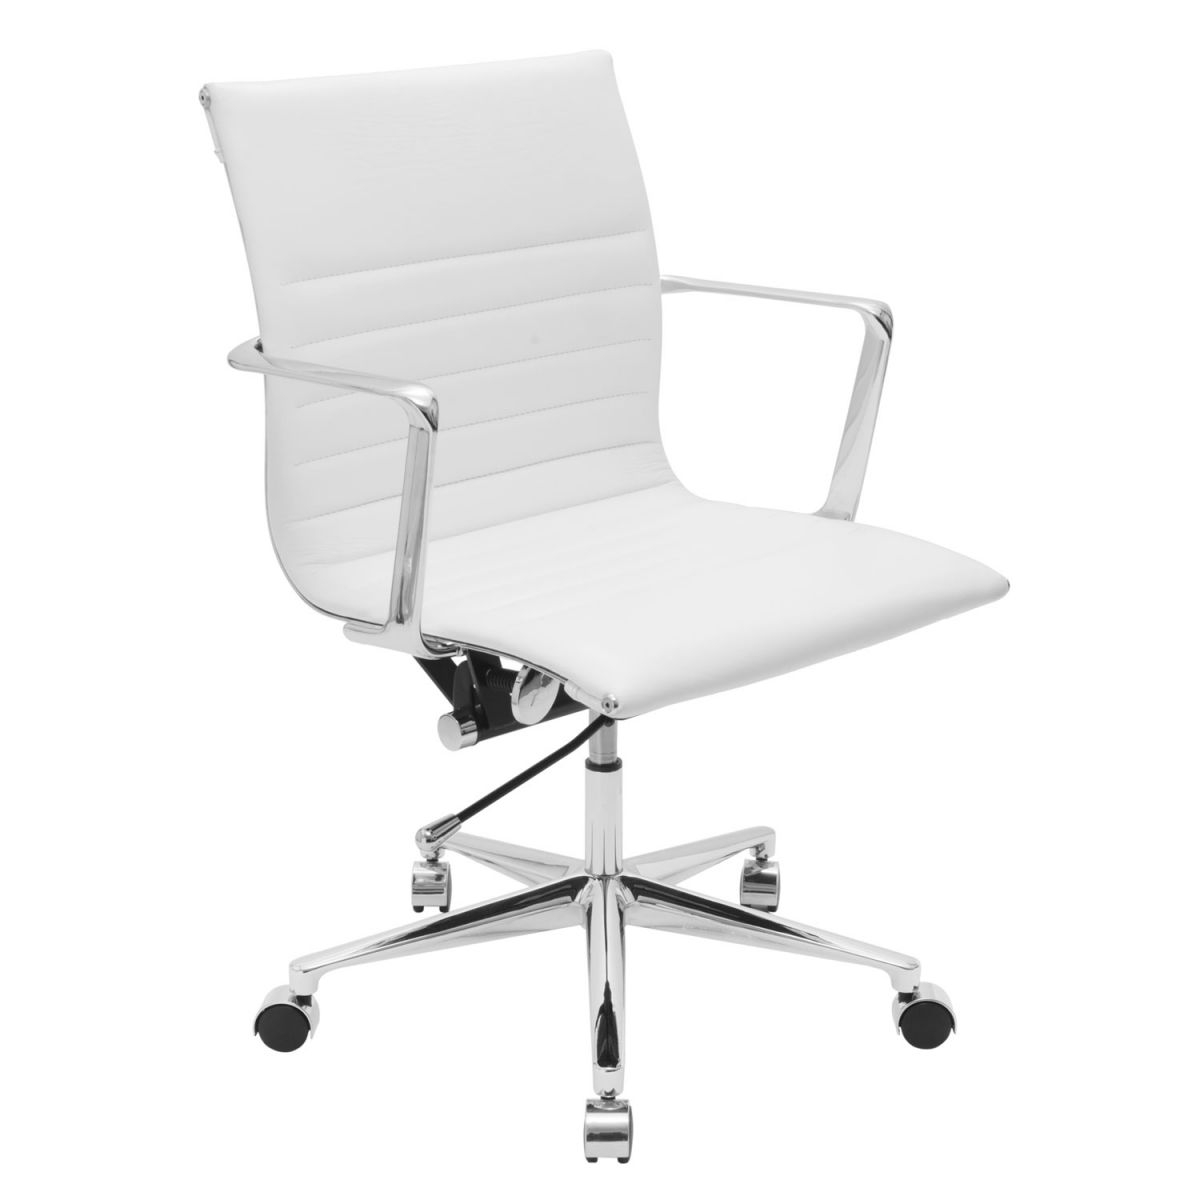 Real Leather Office Chair White within White Leather Office Chair